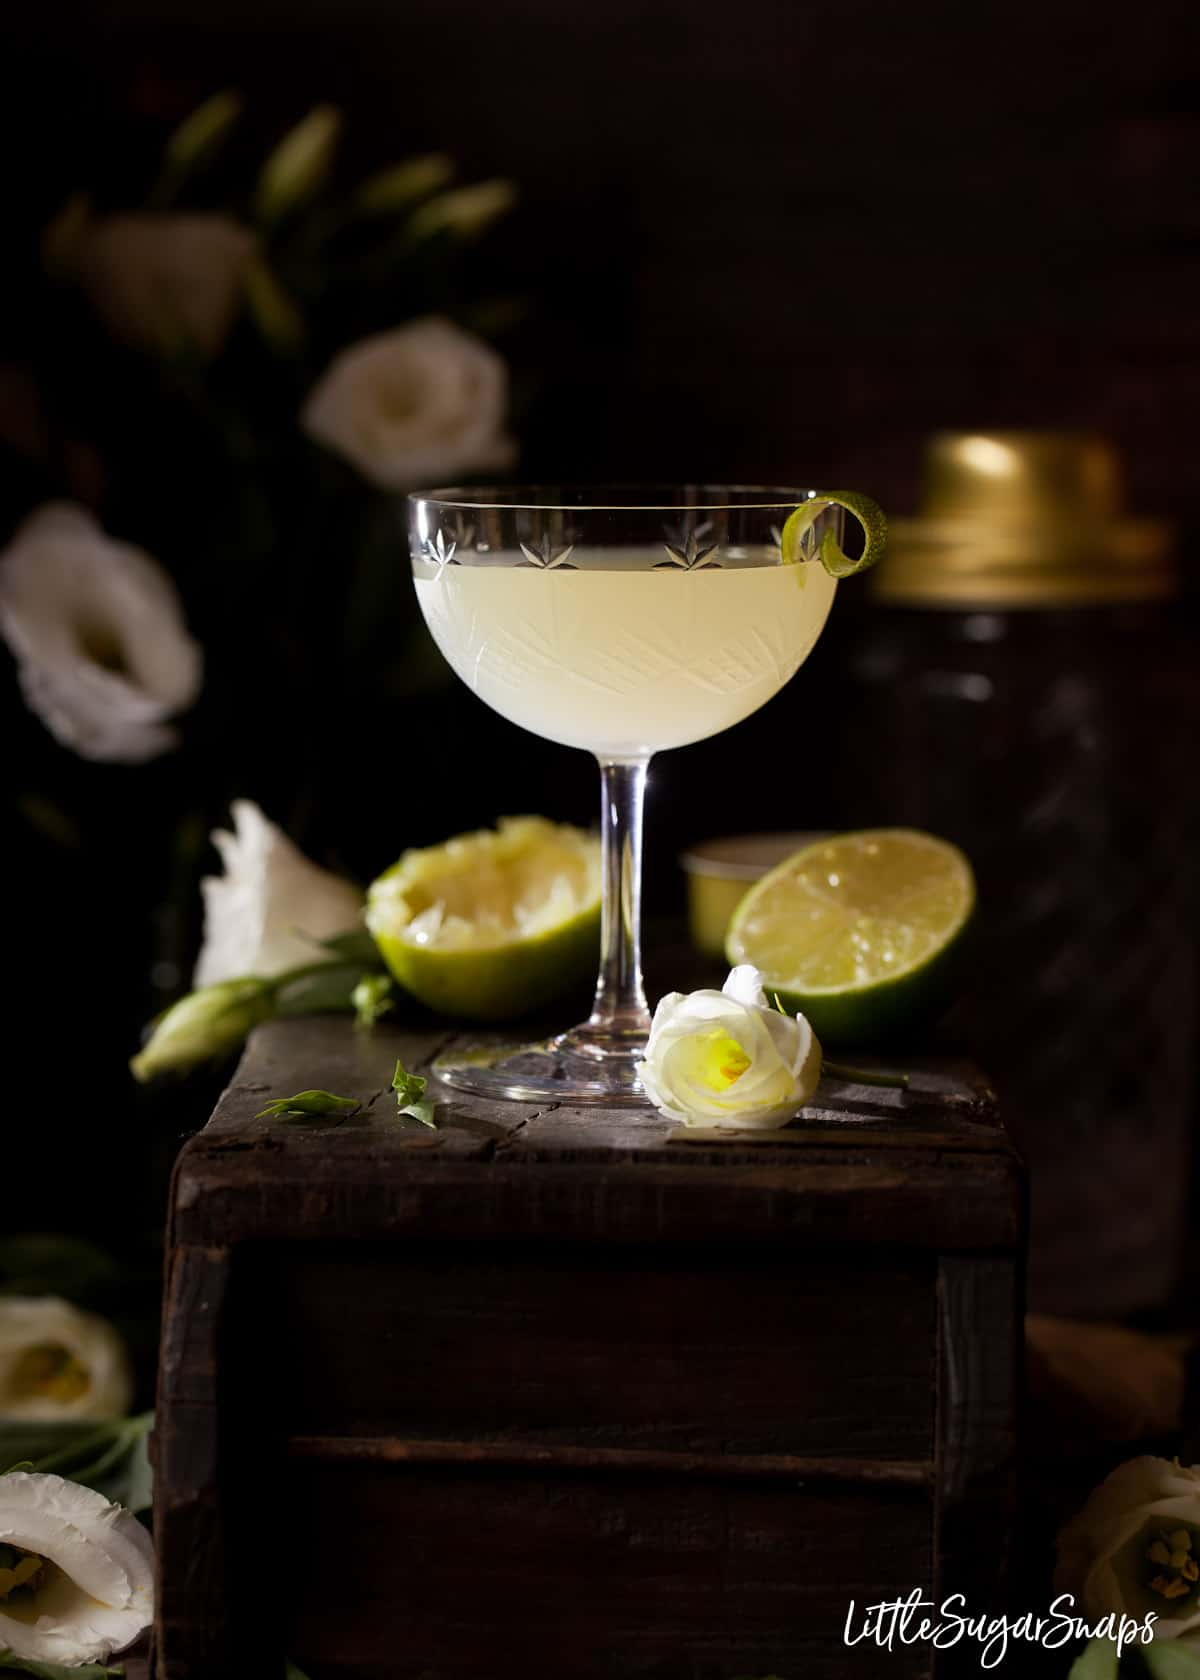 A classic daiquiri cocktail garnished with a curl of lime. It is served in a vintage cocktail glass and rests on a wooden block with white flowers and lime halves in the background